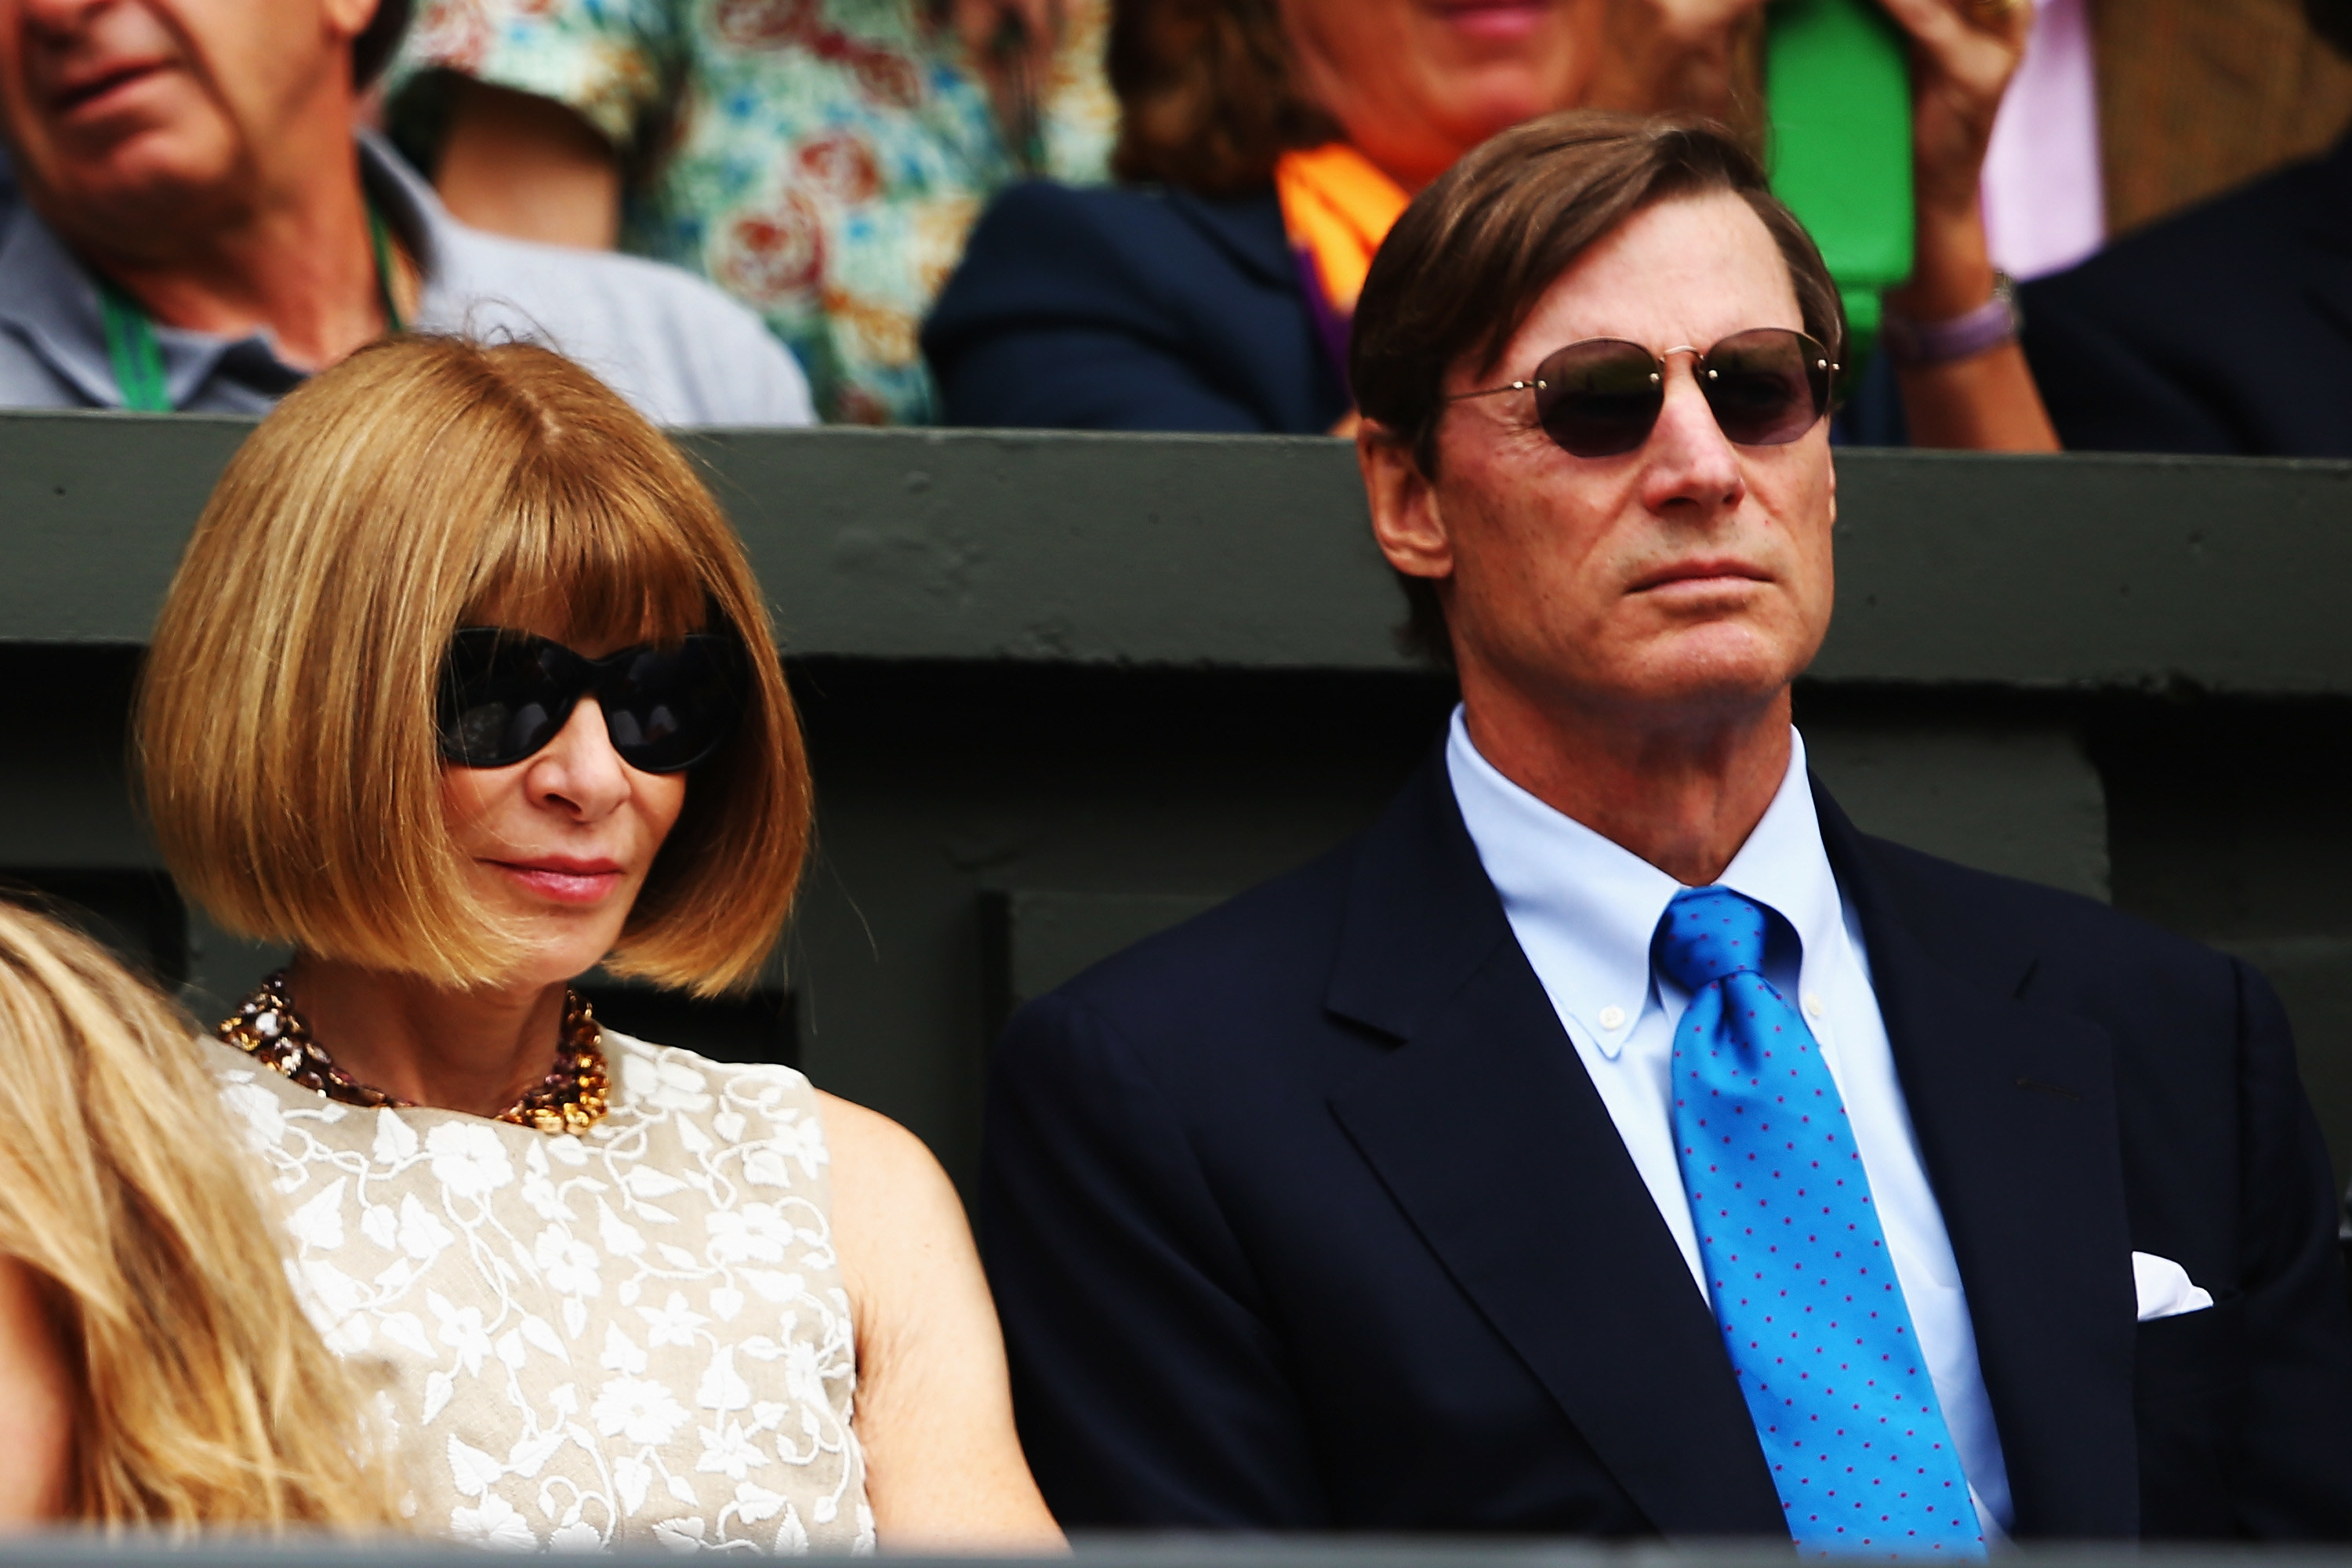 at a tennis match in glasses looking intimidating